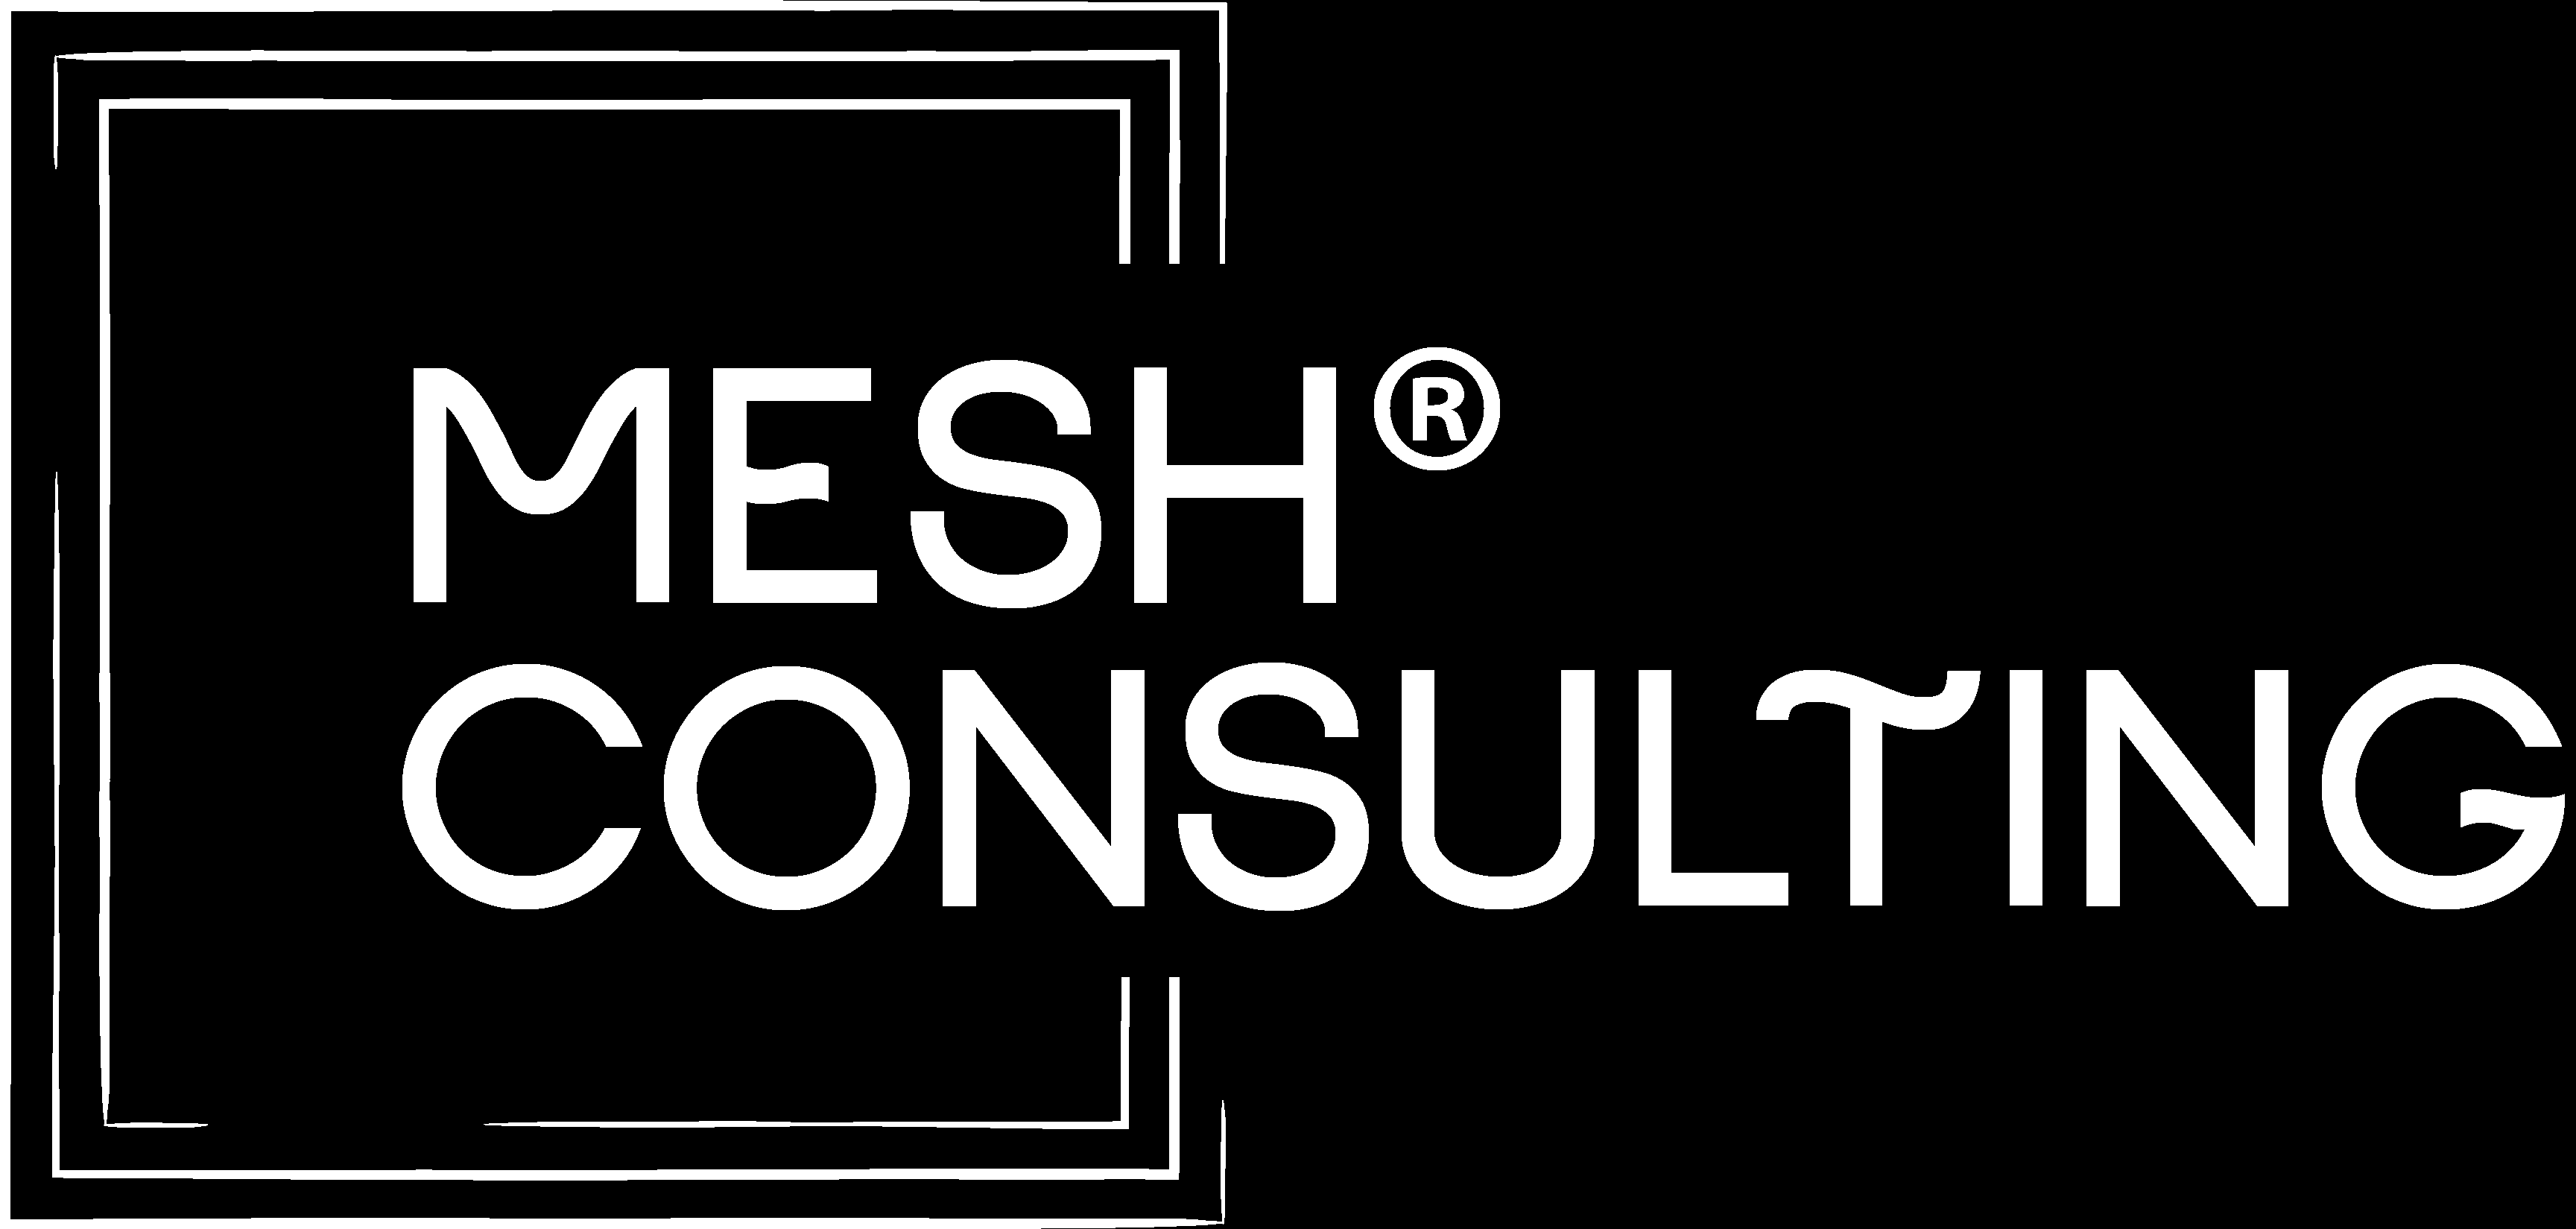 MESH® CONSULTING